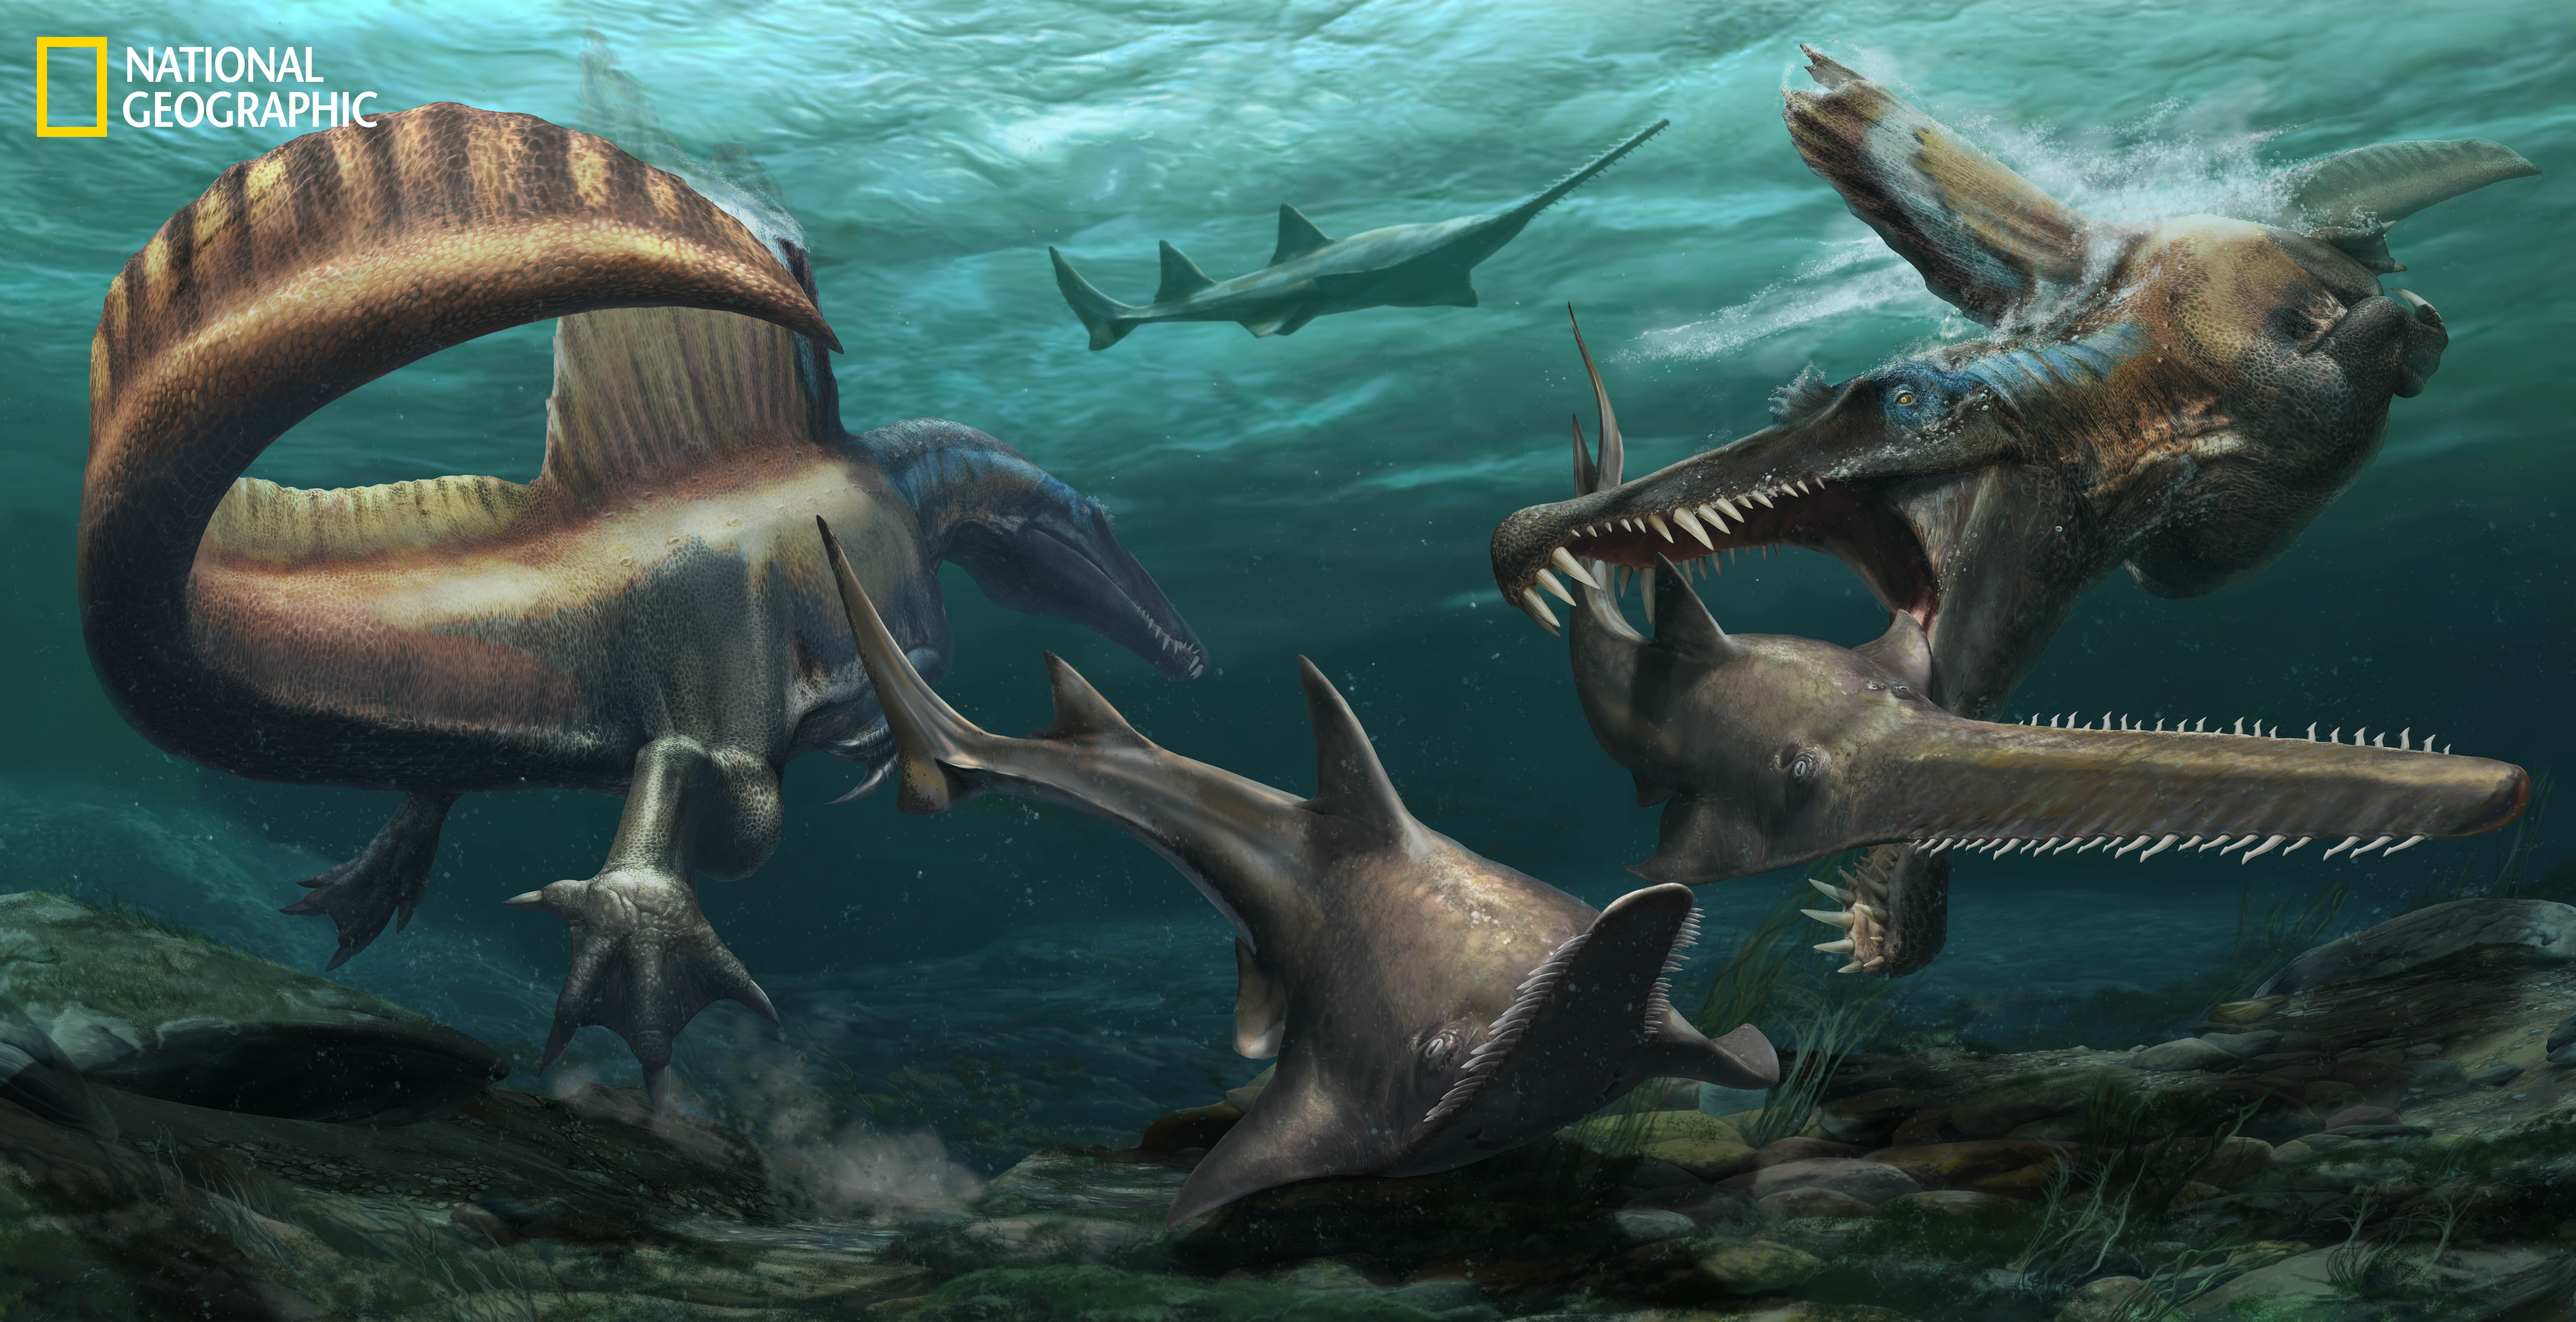 Two Spinosaurus hunt Onchopristis, a prehistoric sawfish, in the waters of the Kem Kem river system in what is now Morocco. (Credit: Jason Treat, NG Staff, and Mesa Schumacher. Art: Davide Bonadonna. Source: Nizar Ibrahim, University of Detroit Mercy)